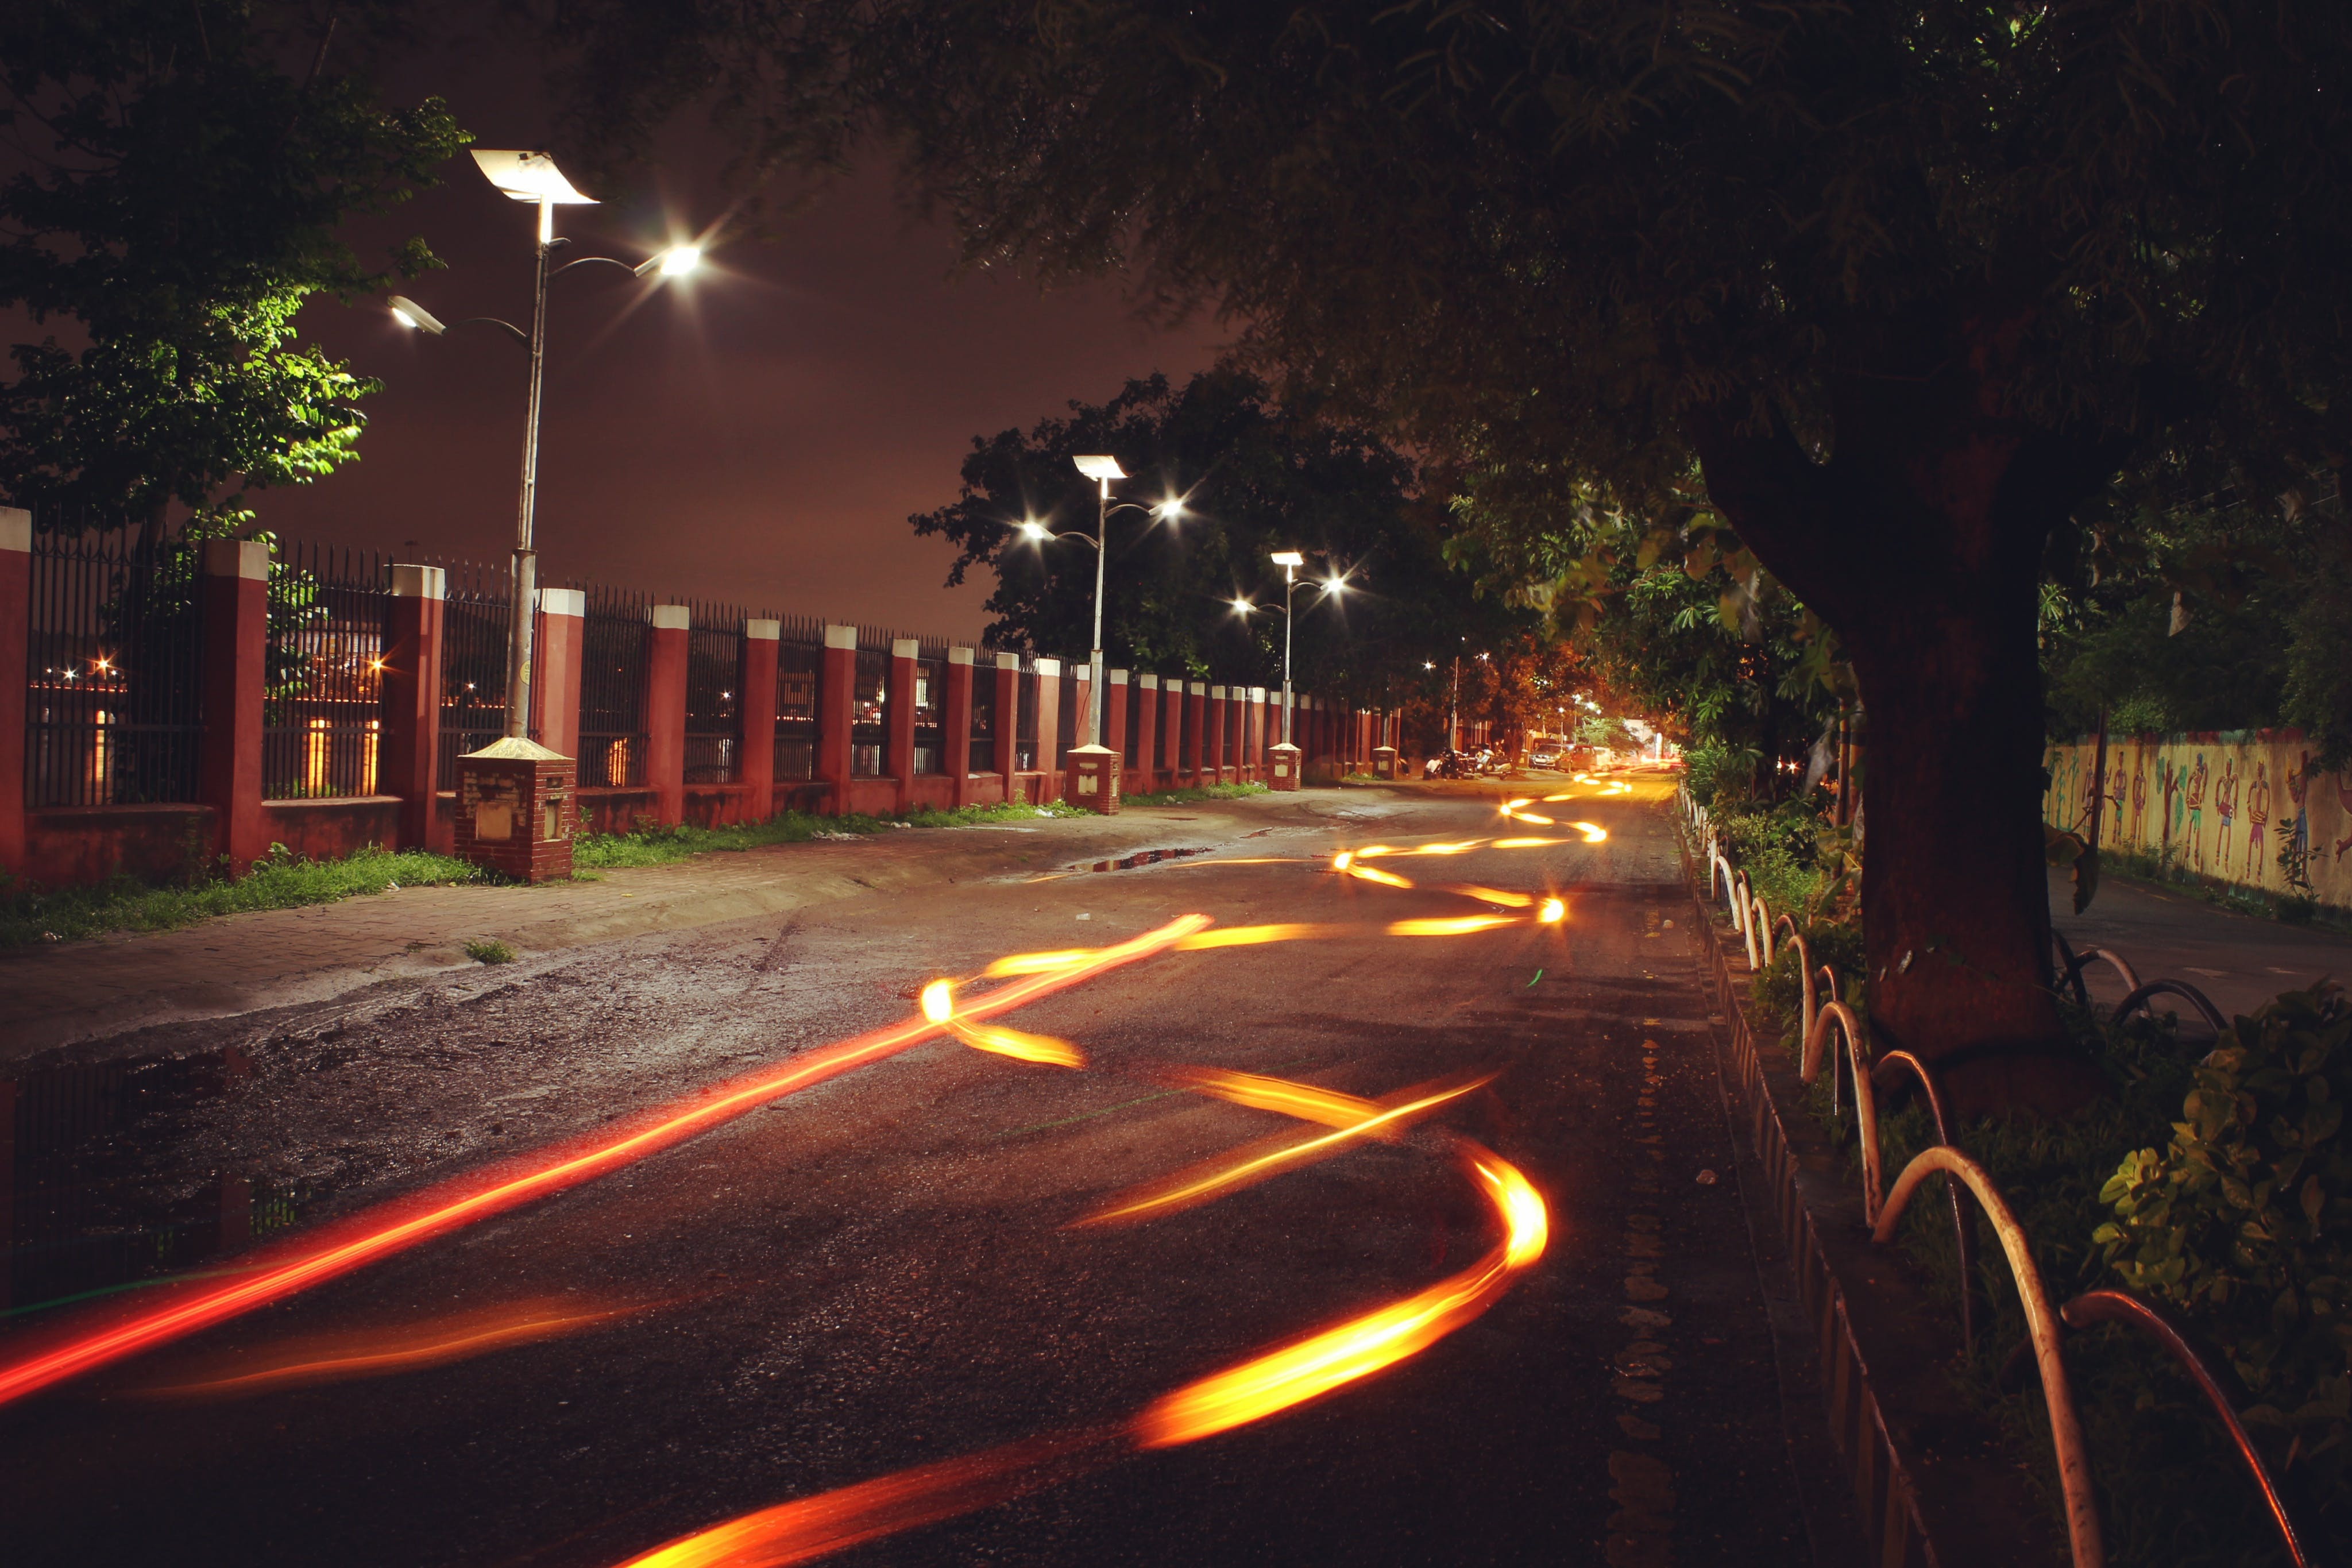 Free stock photo of #road #light #trails #night #photography #canon